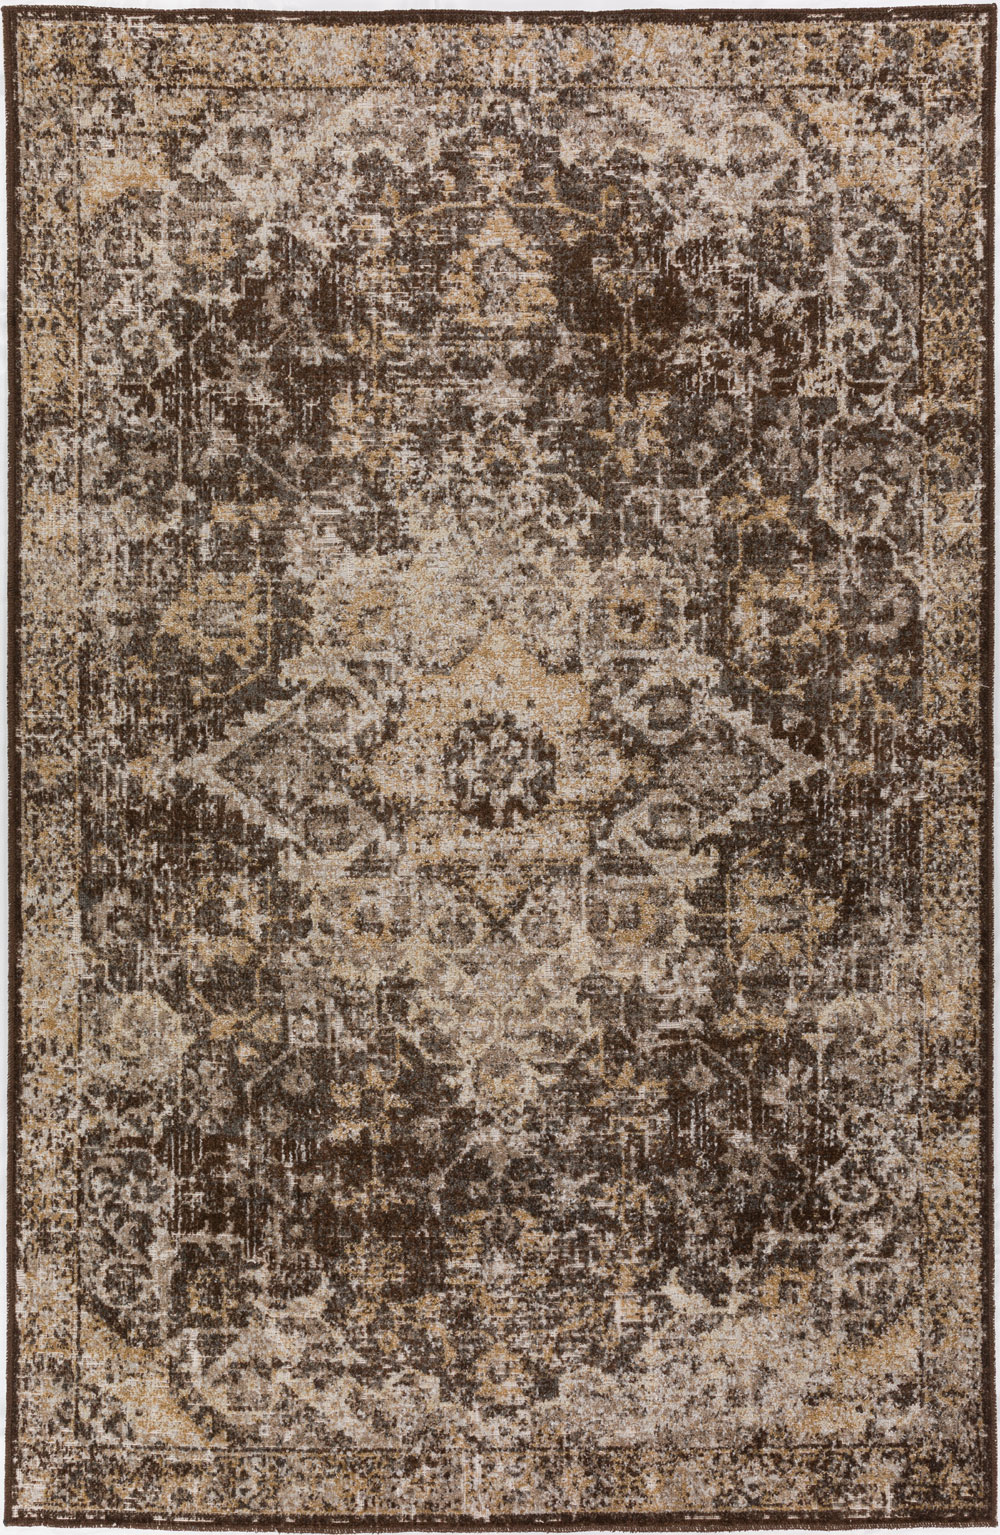 Dalyn Mercier MR1 Chocolate Rug